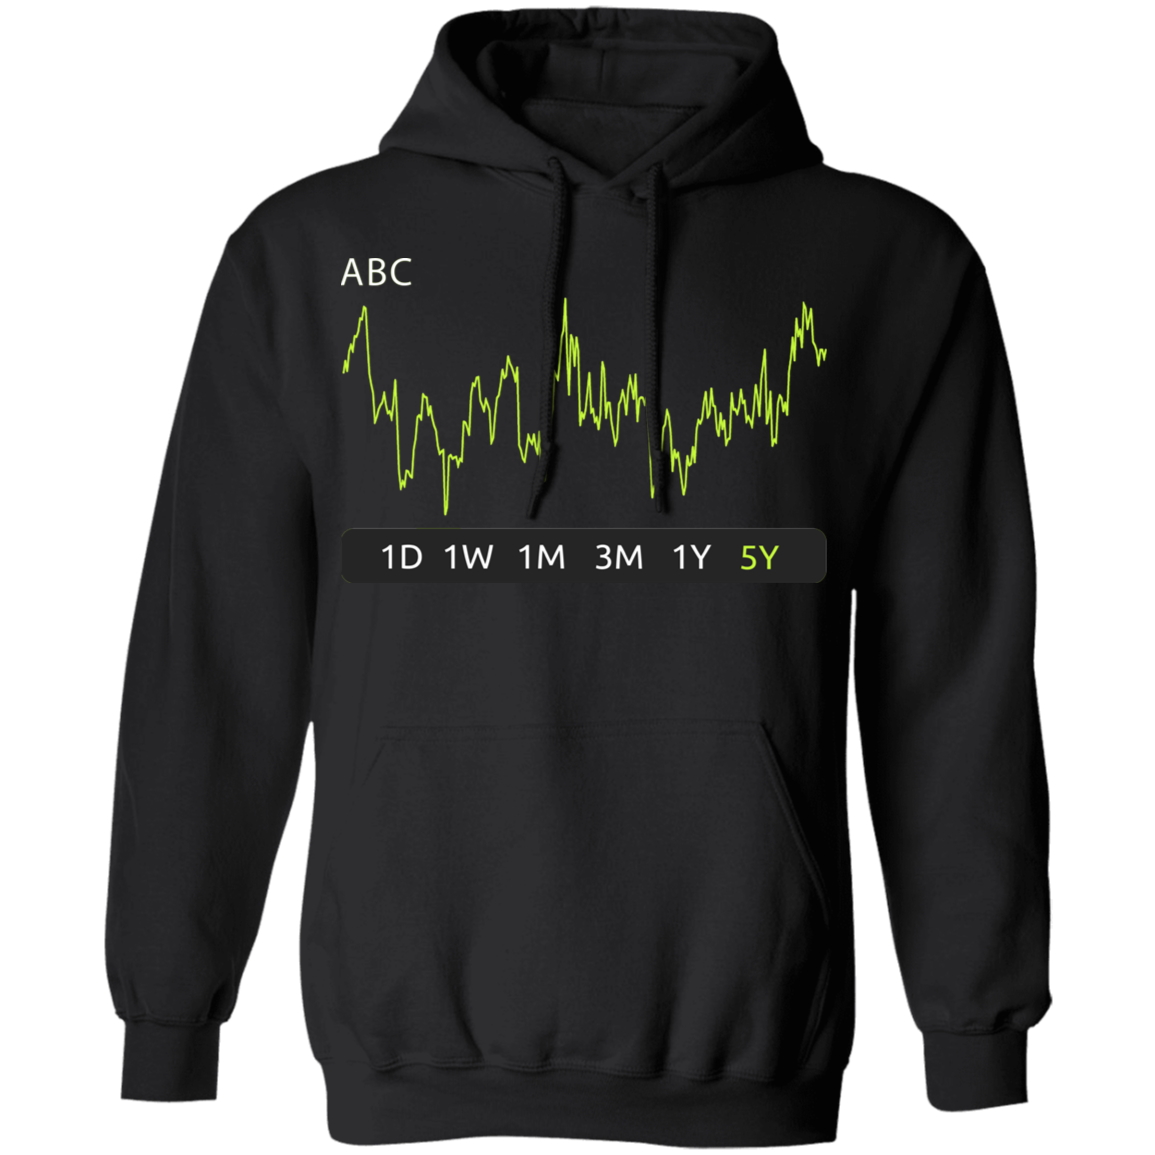 ABC Stock 5y Pullover Hoodie